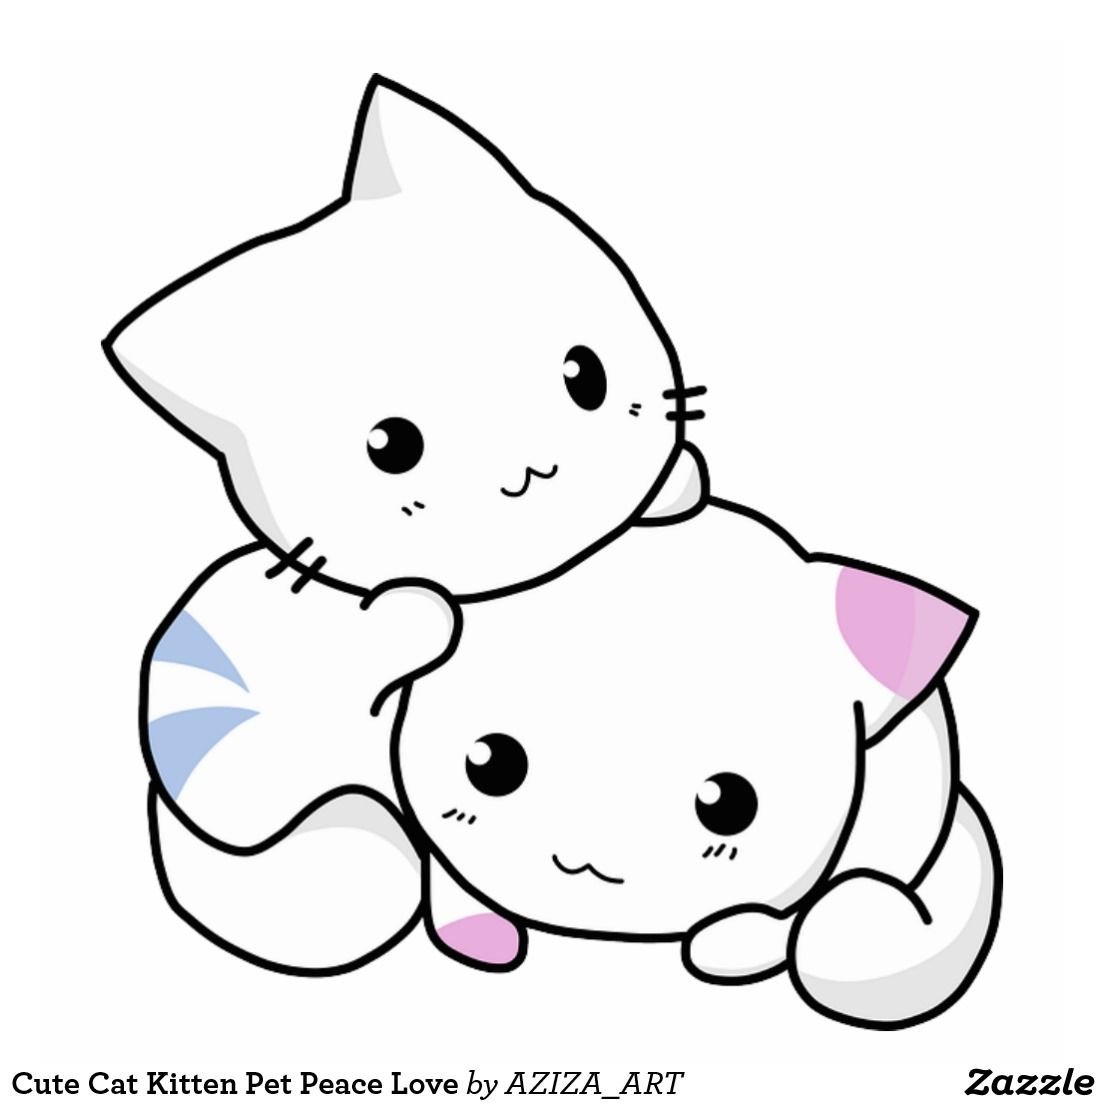 Cute Cat Kitten Pet Peace Love Cutout Zazzle Com In 2020 Cute Anime Cat Kitten Drawing Anime Kitten